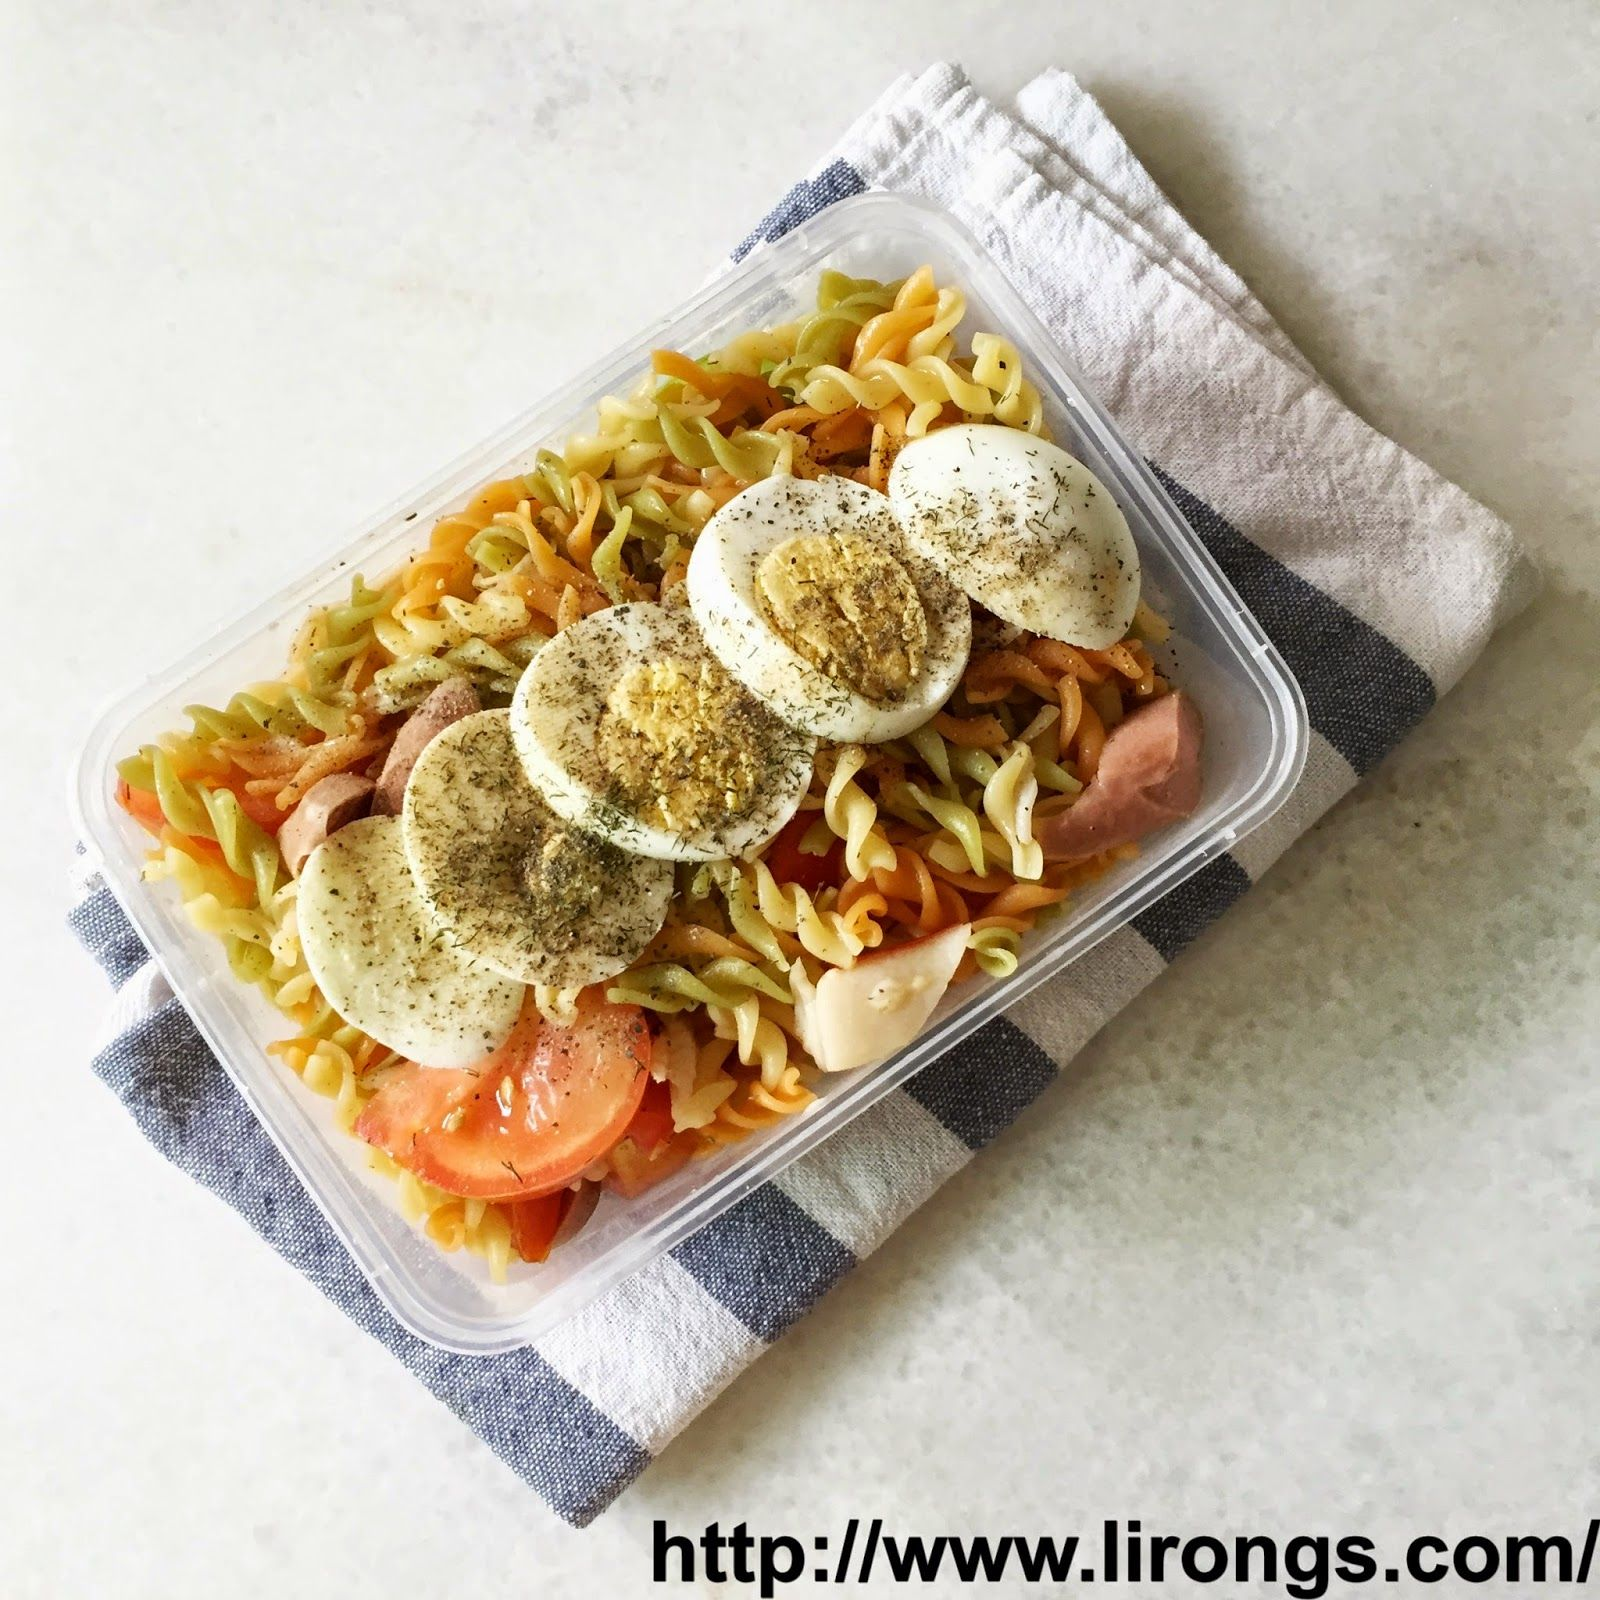 Lirong a singapore food and lifestyle blog recipe pasta salad lirong a singapore food and lifestyle blog recipe pasta salad forumfinder Choice Image